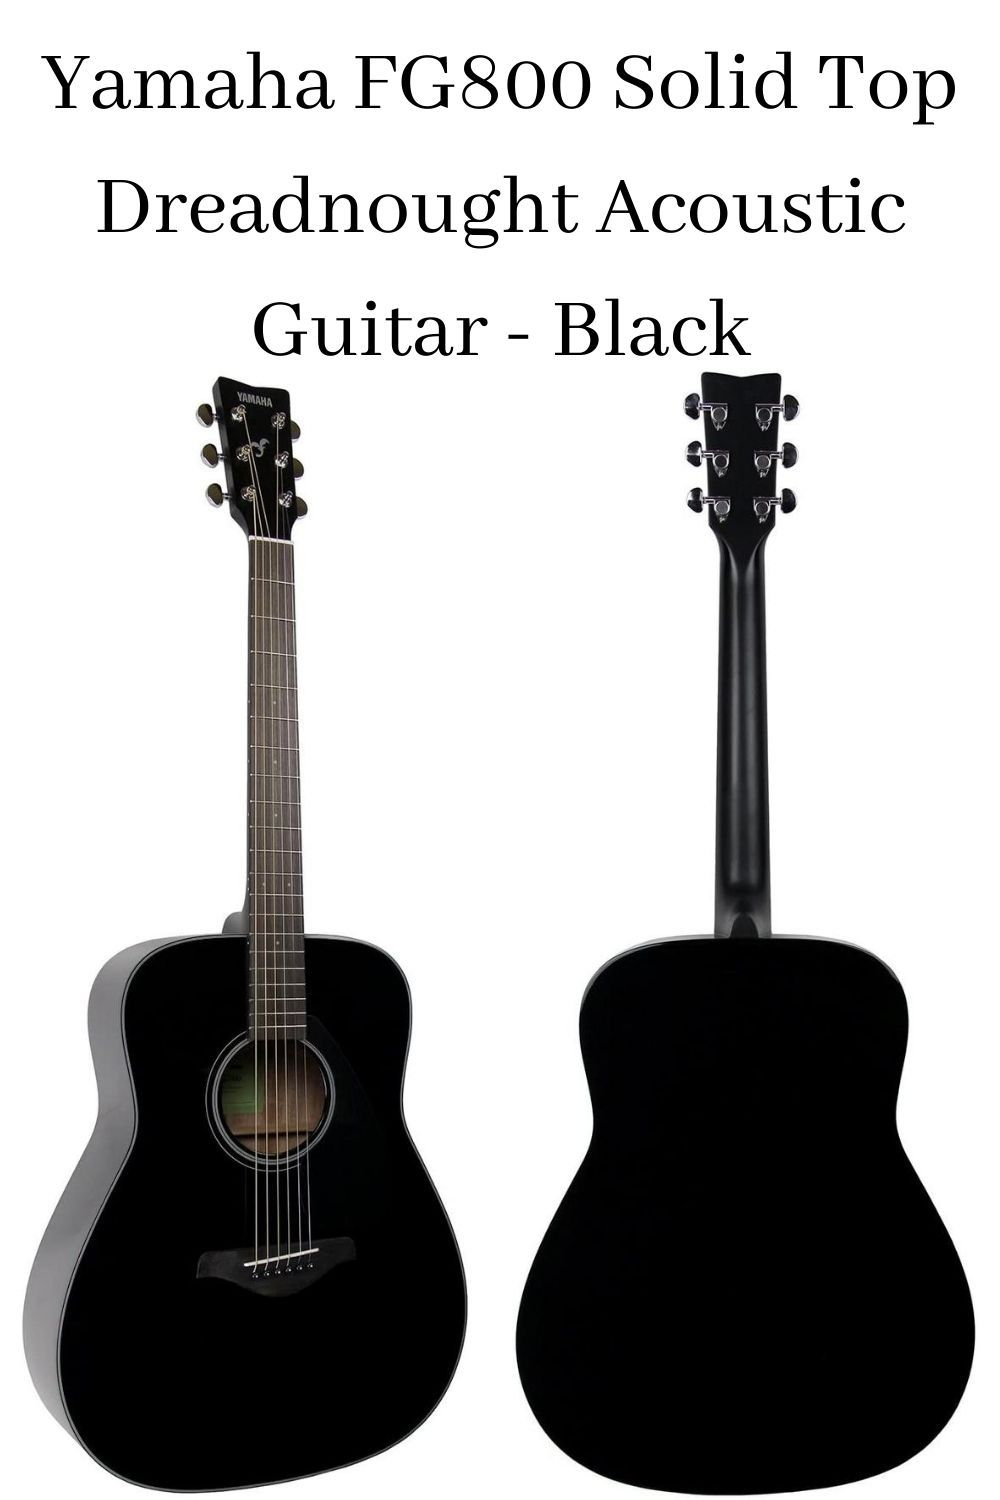 Yamaha Fg800 Solid Top Dreadnought Acoustic Guitar Black Yamaha Acoustic Guitar Yamaha Acoustic Guitar